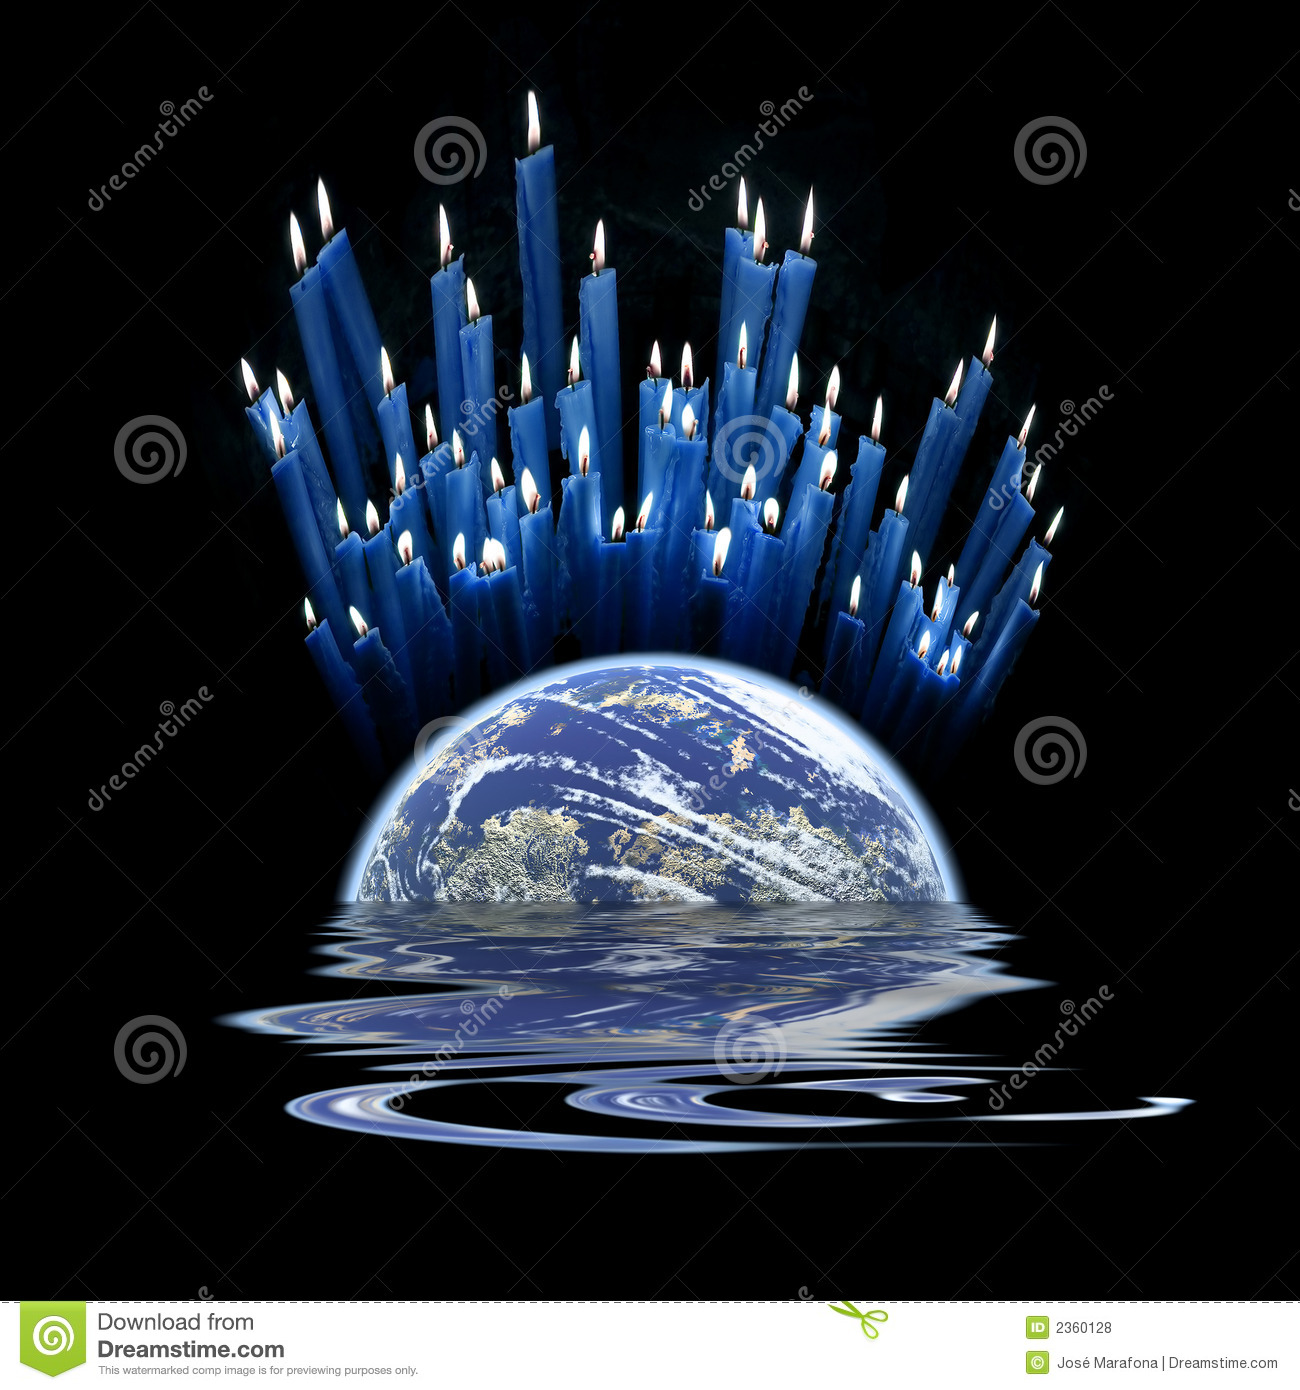 Berühmt A Pray For The World. Royalty Free Stock Photos - Image: 2360128 DI42